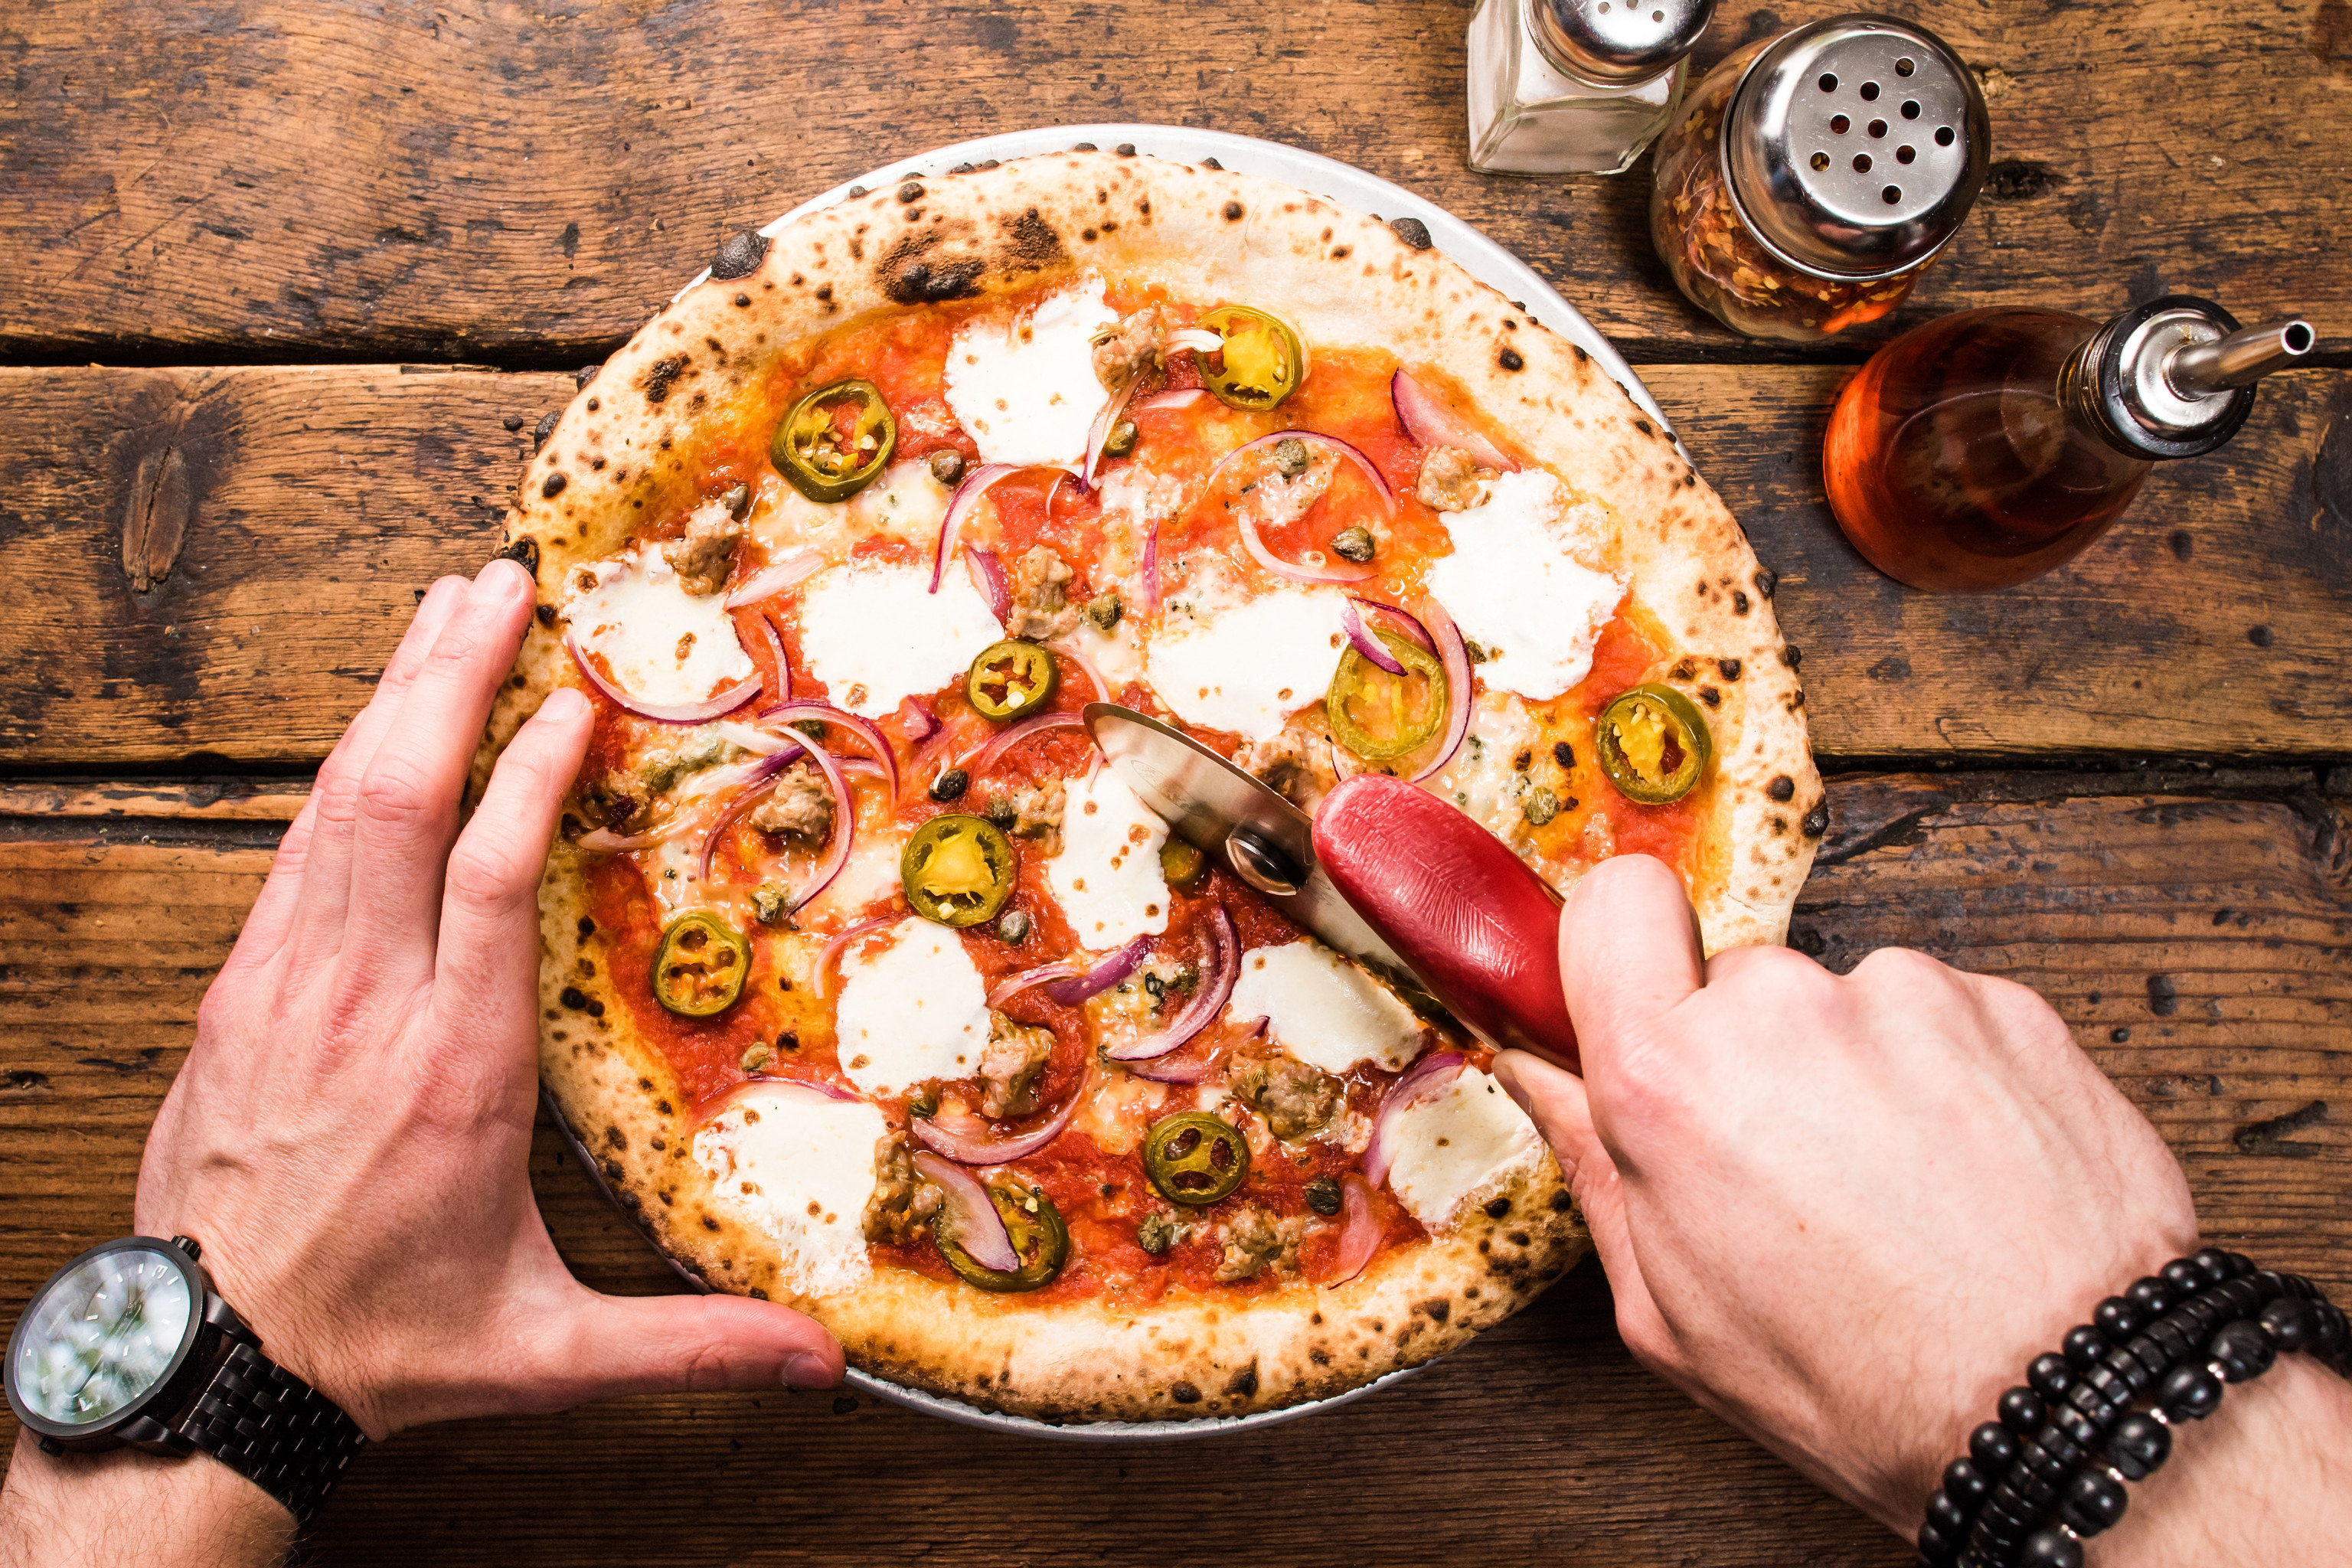 Brooklyn City Food + Drink NYC pizza dish person cuisine food italian food wooden european food pizza cheese california style pizza sicilian pizza junk food pizza stone recipe